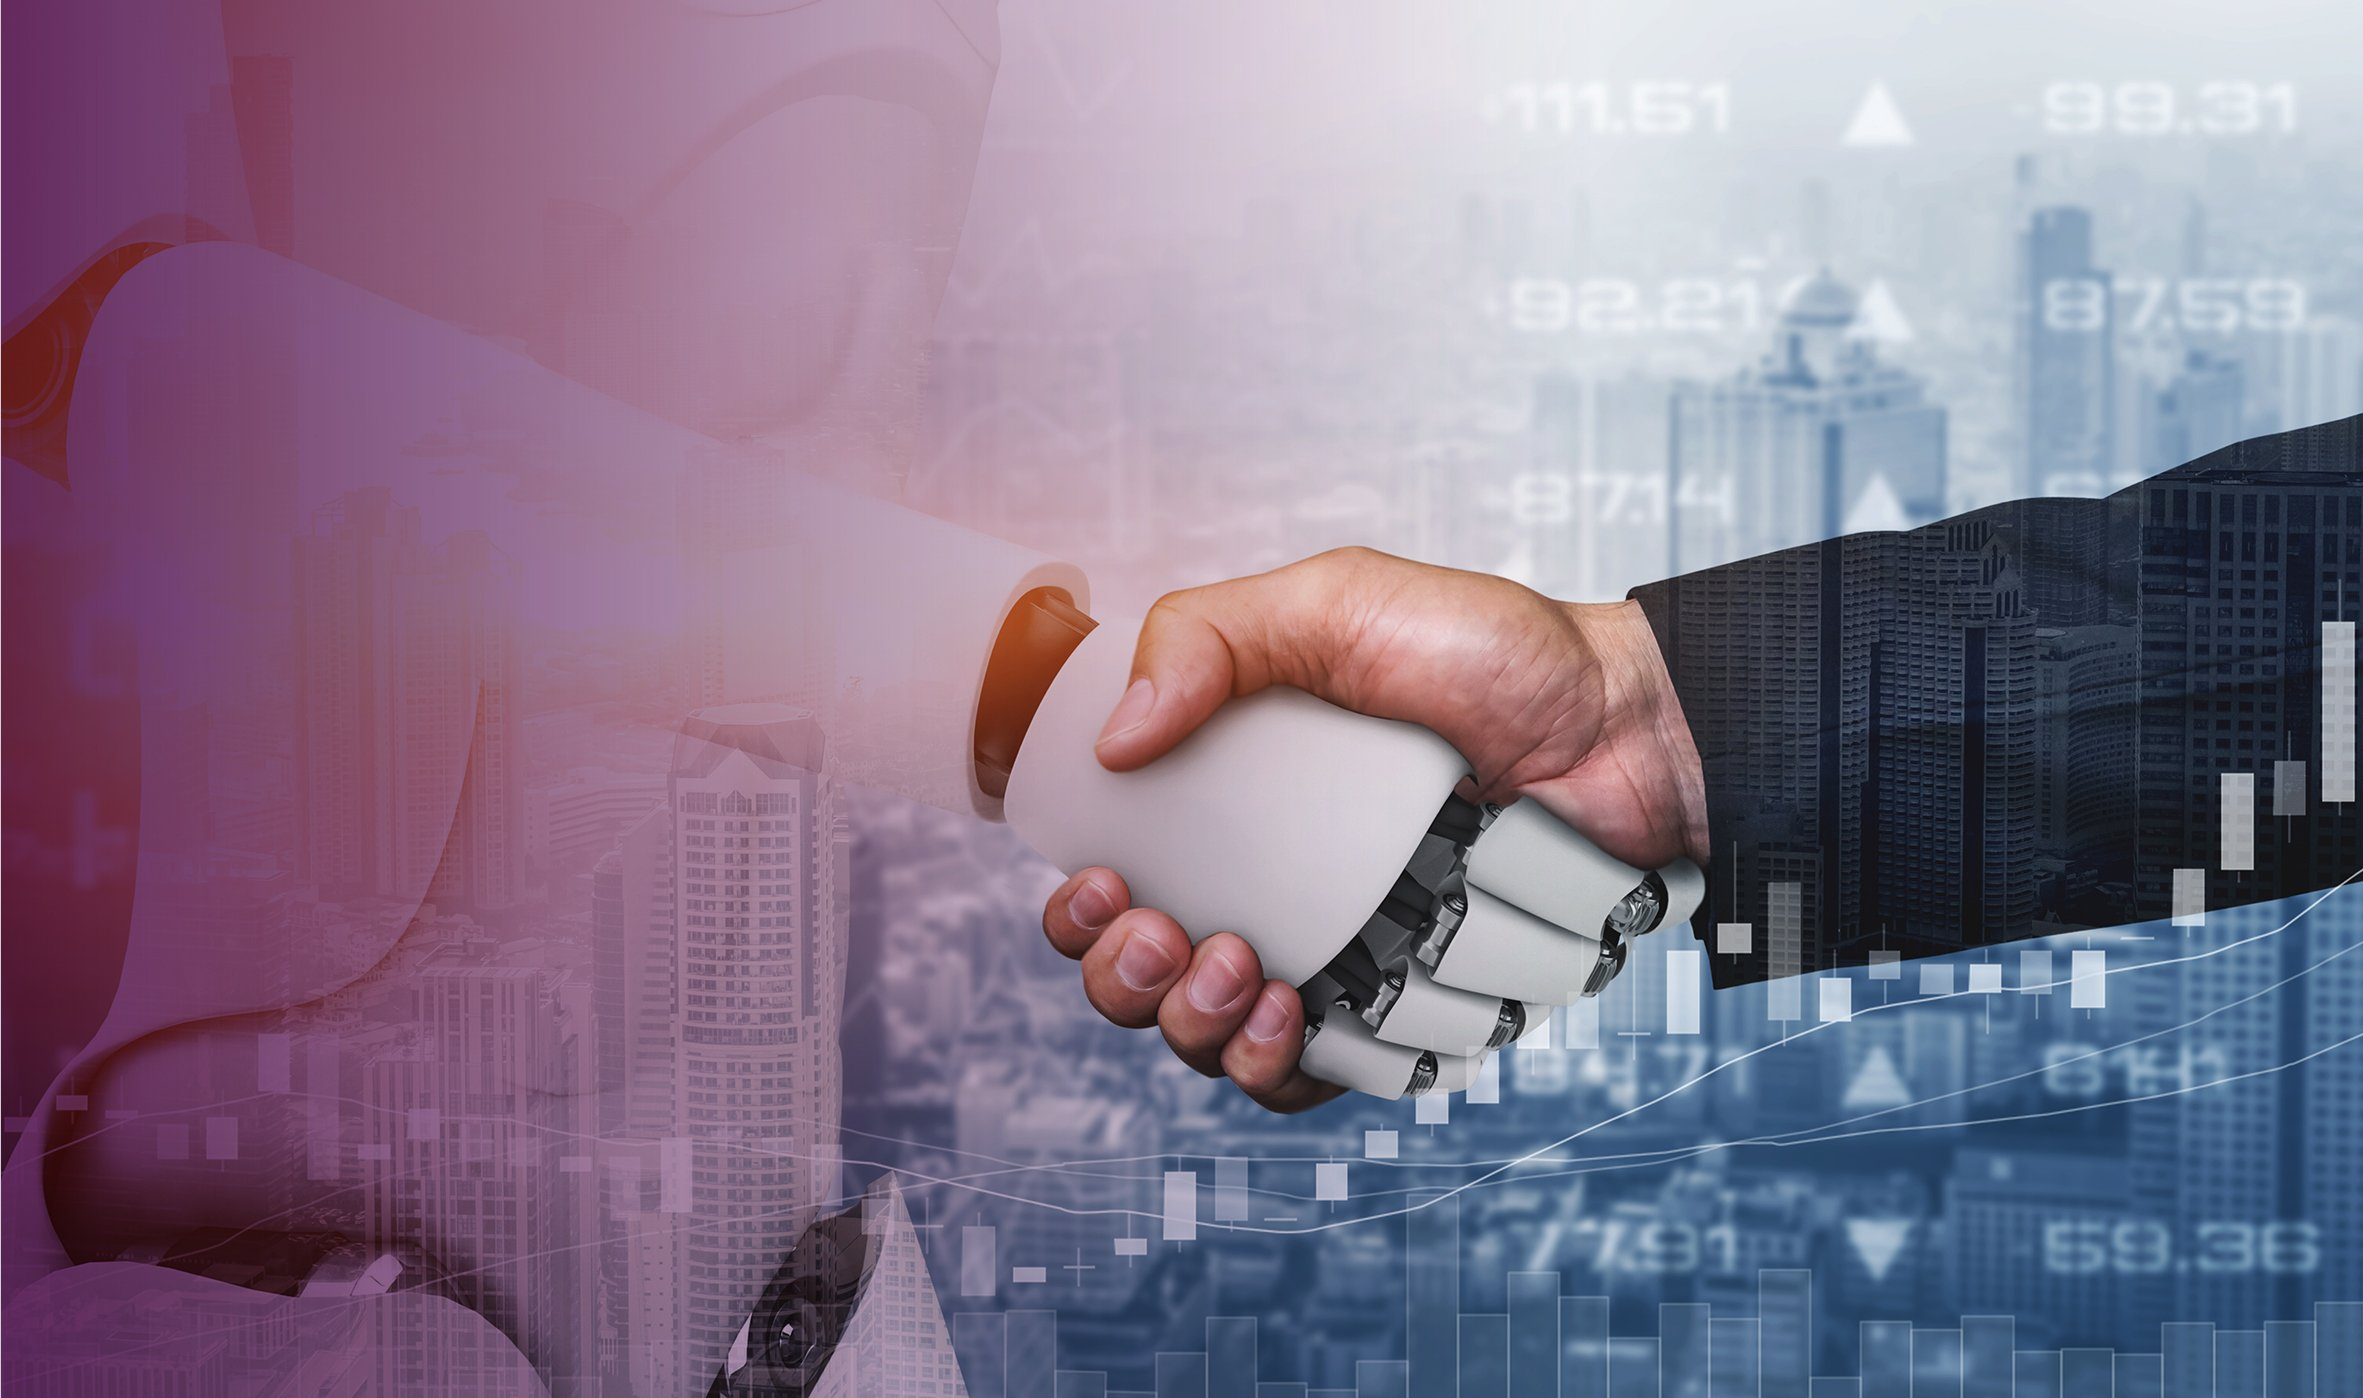 Startek Announces Collaboration with Automation Anywhere to Strengthen its Robotic Process Automation Capabilities